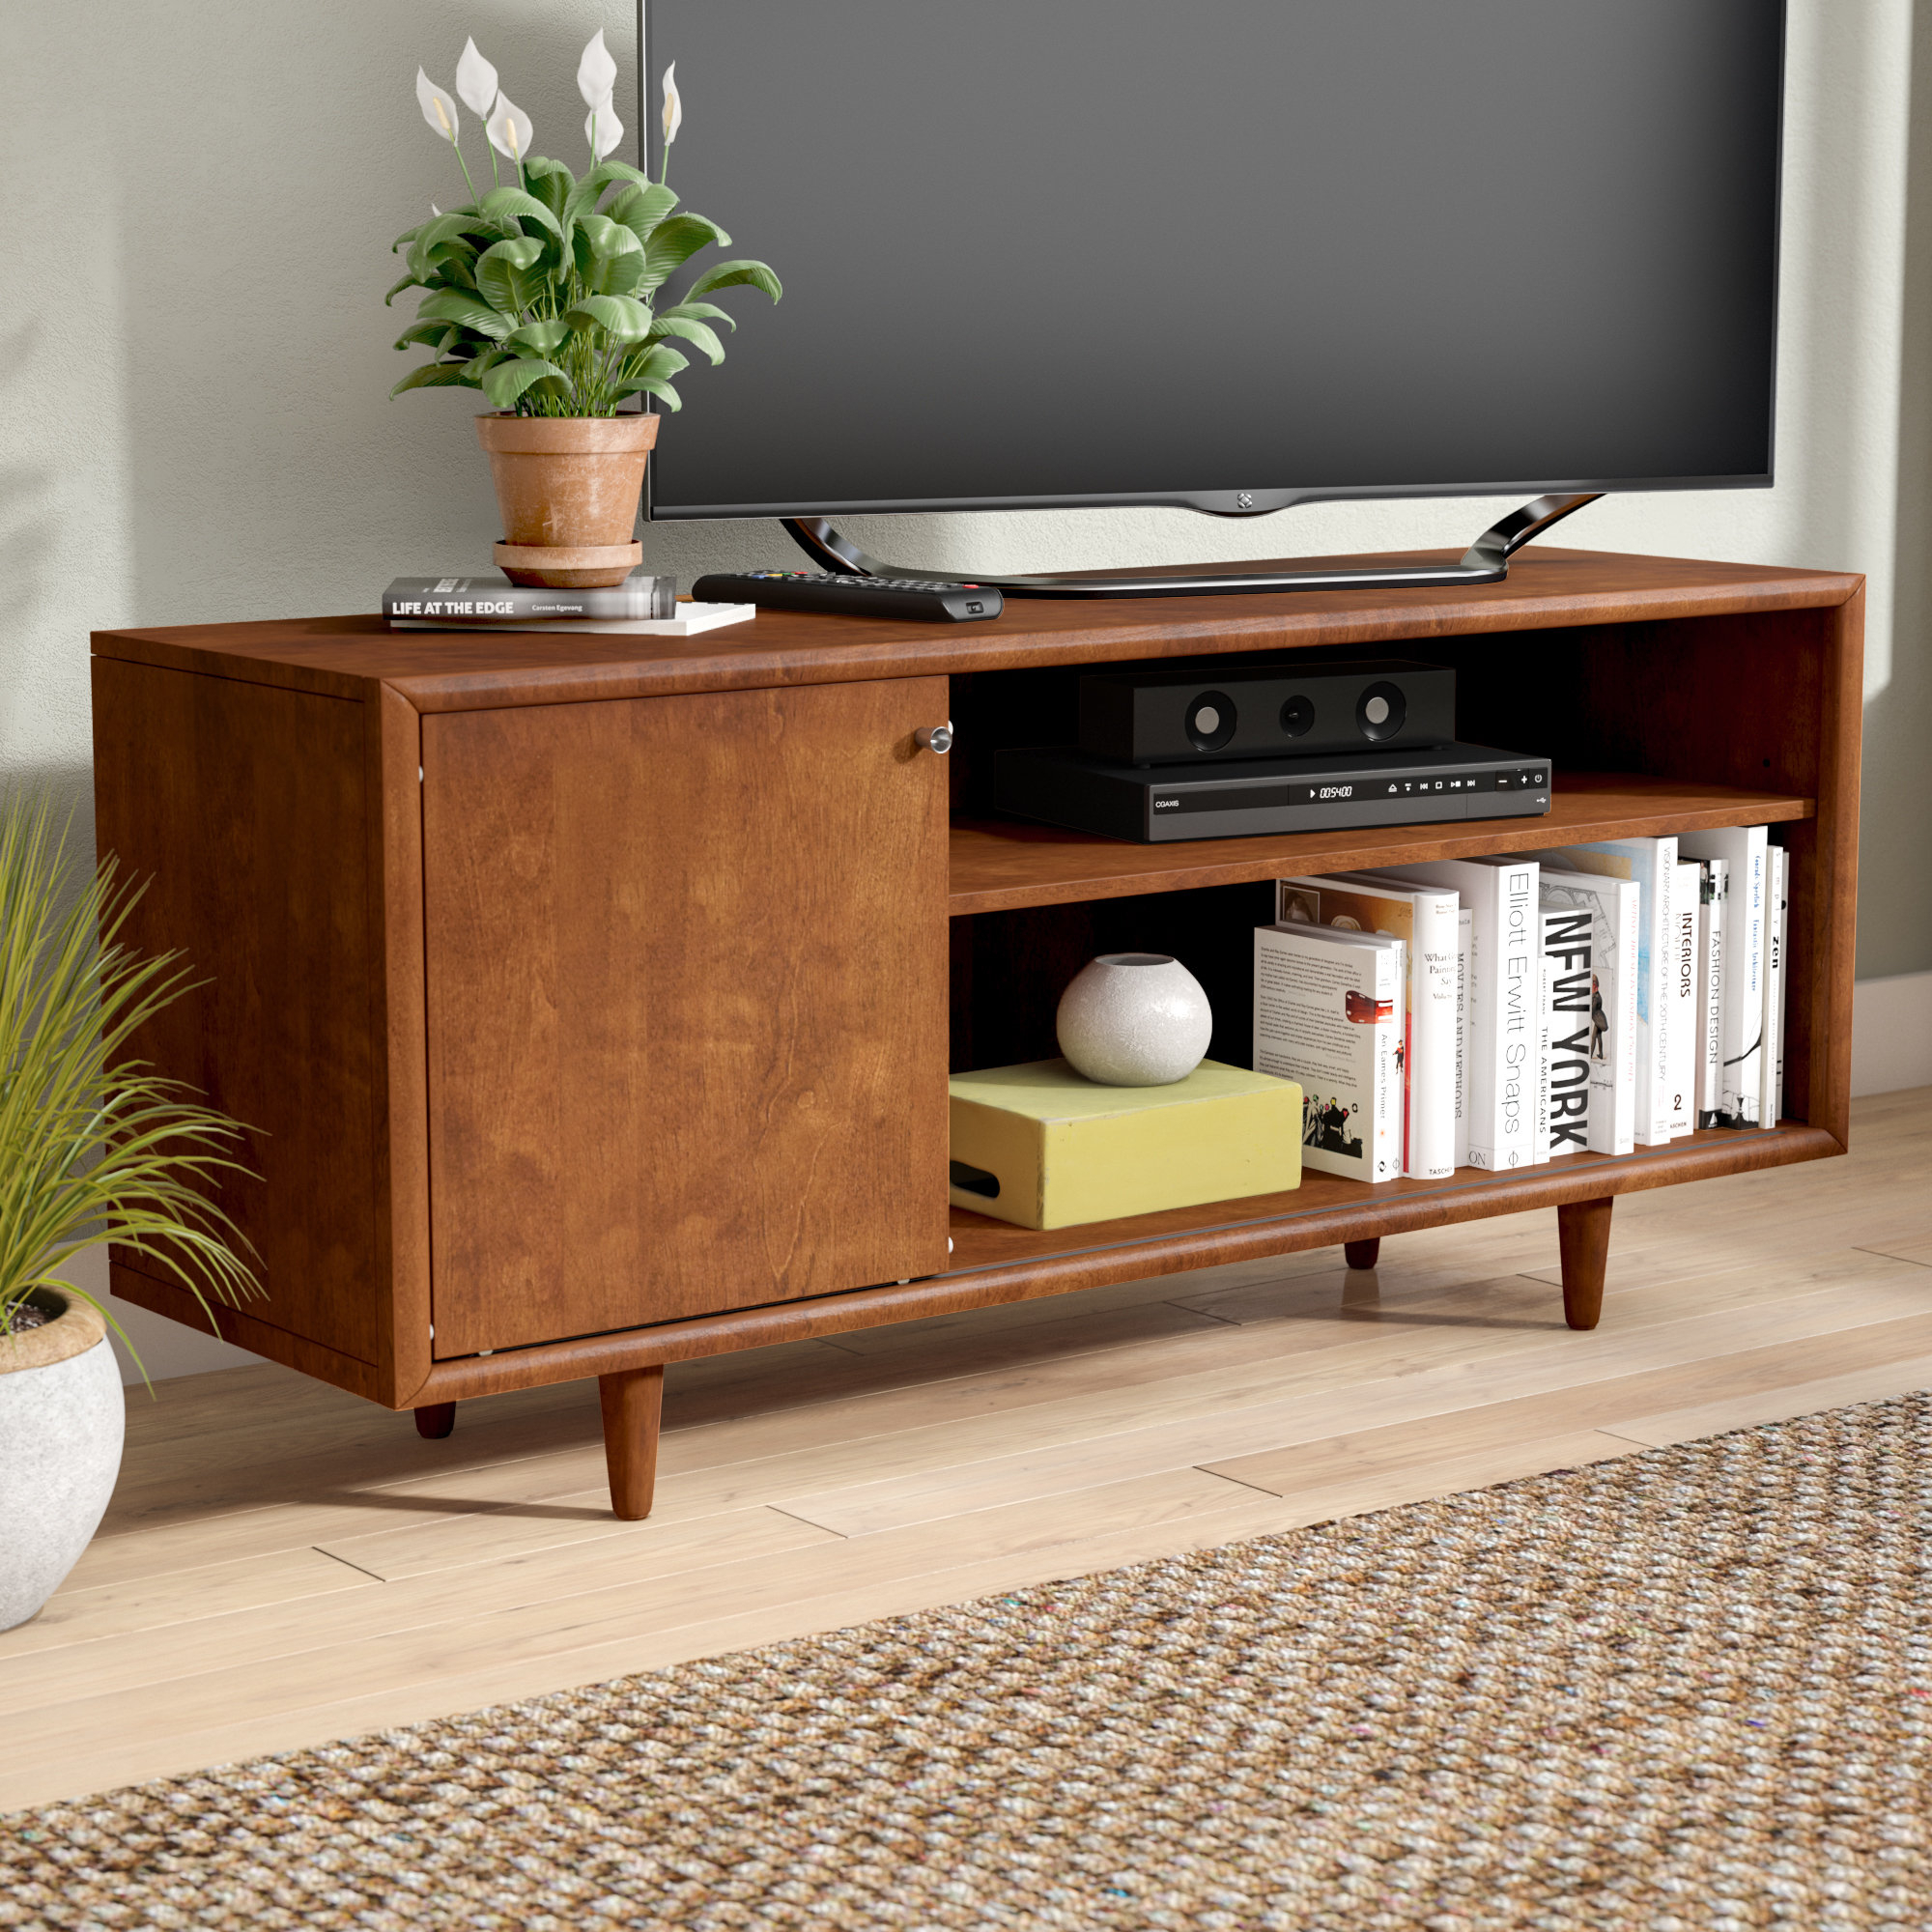 Tv Stands Sale You'll Love | Wayfair Inside Century Blue 60 Inch Tv Stands (View 24 of 30)